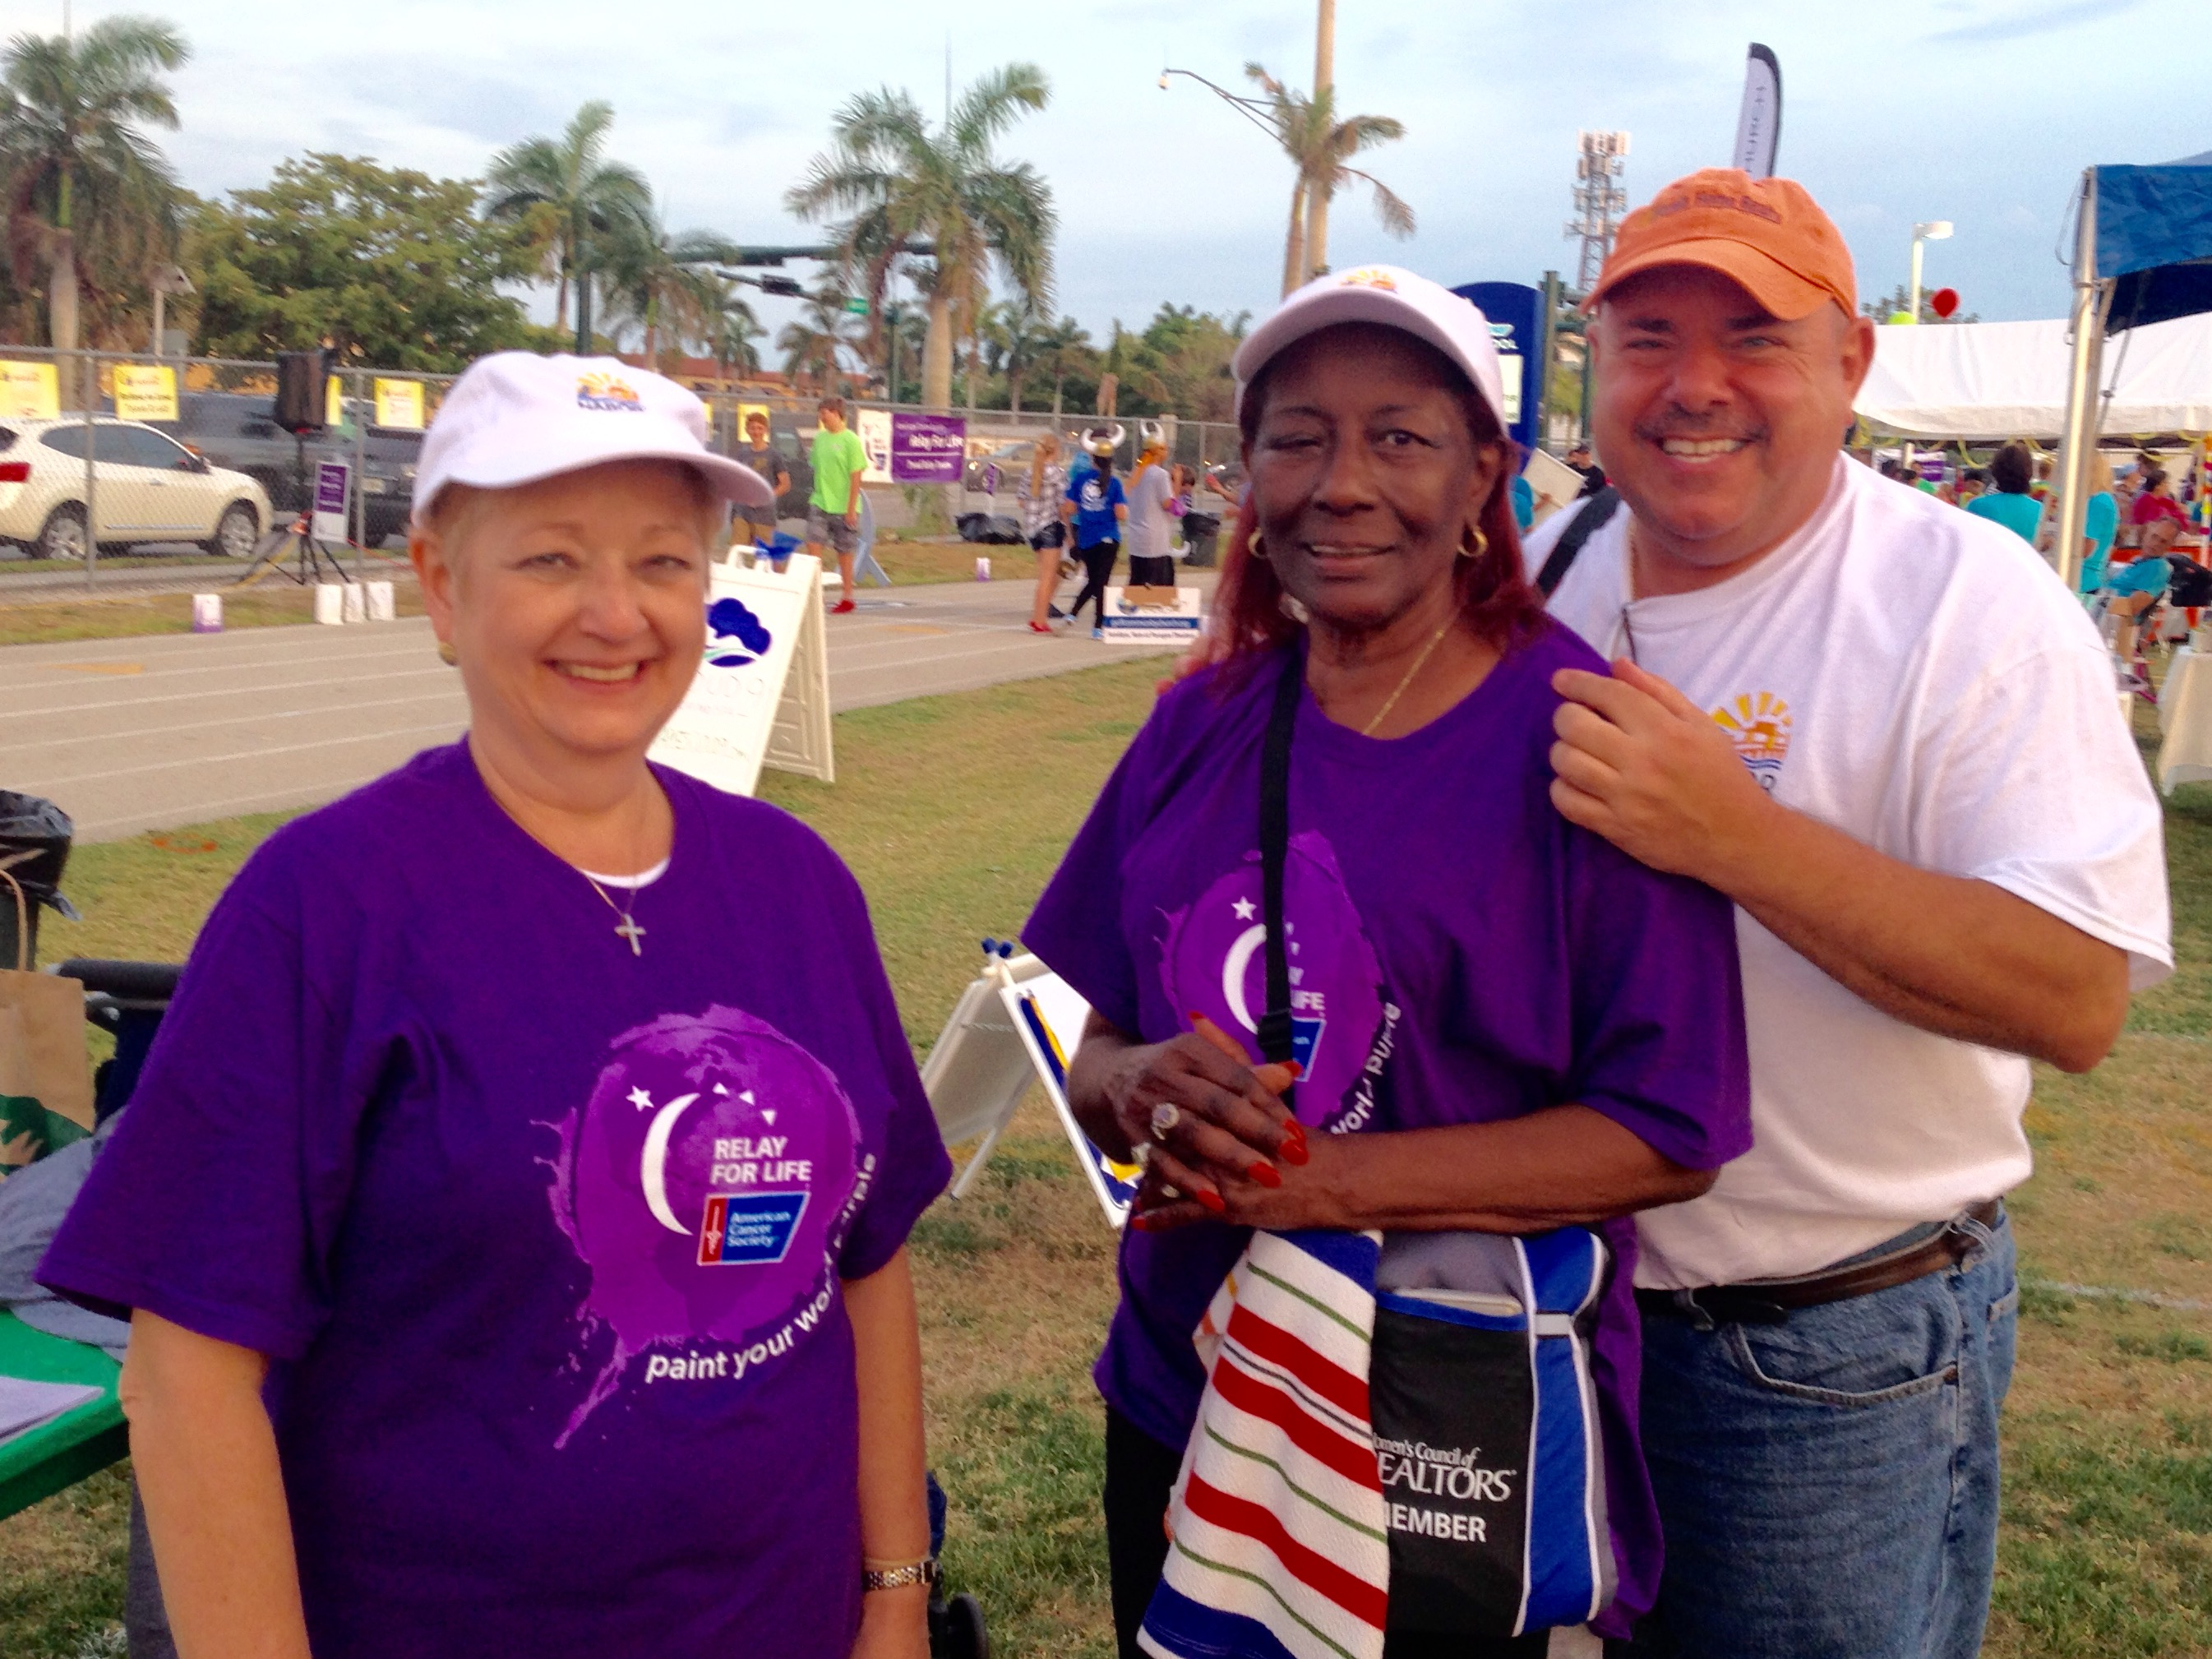 Relay for Life in Naples, FL was a success.